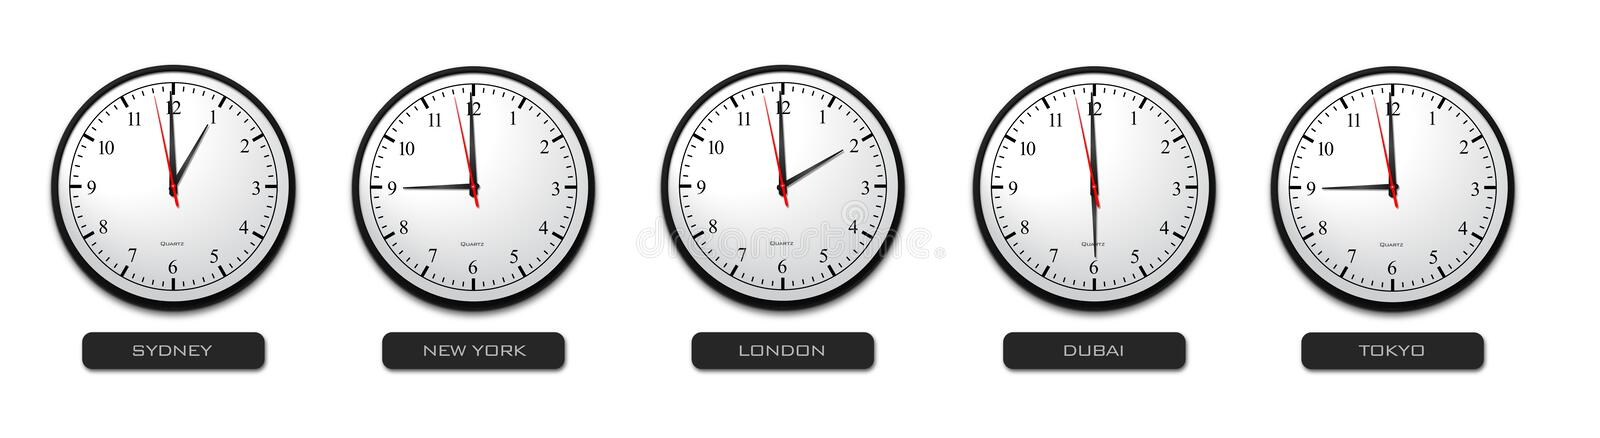 Business Concept - Time Zone Clocks. Business Concept - Five Time Zone Clocks stock illustration